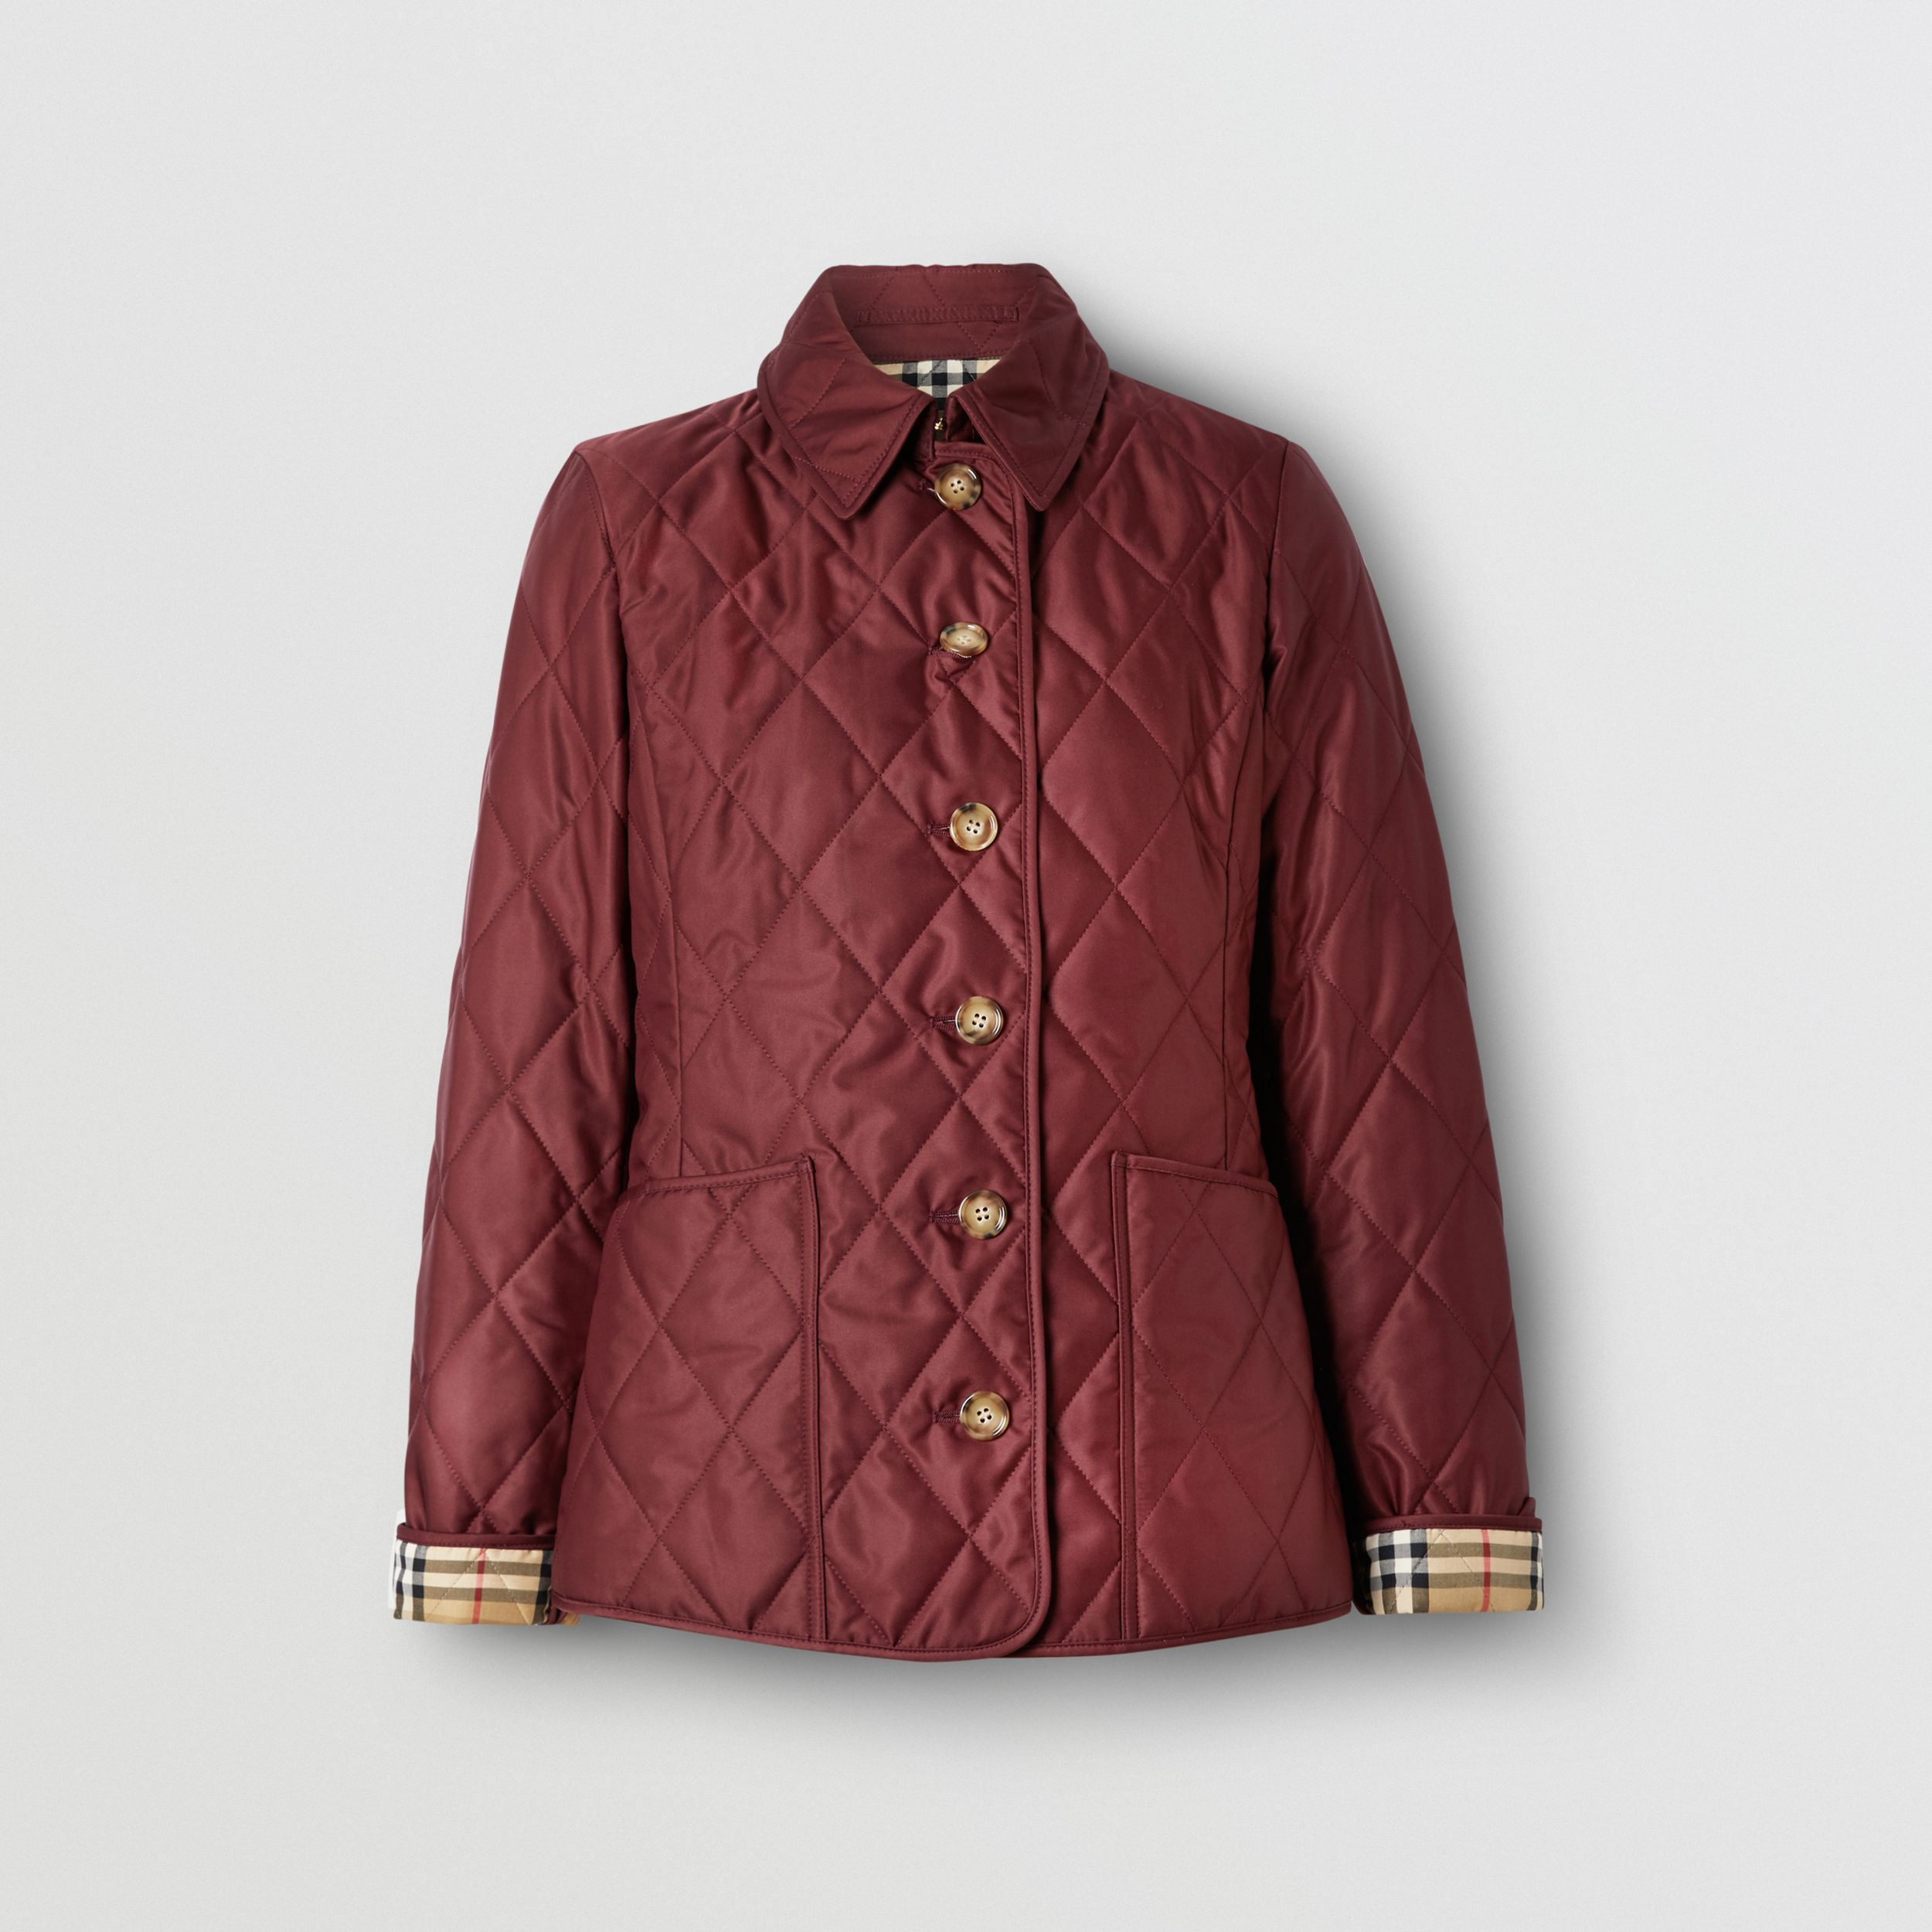 Diamond Quilted Thermoregulated Jacket in Deep Claret - Women | Burberry - 4